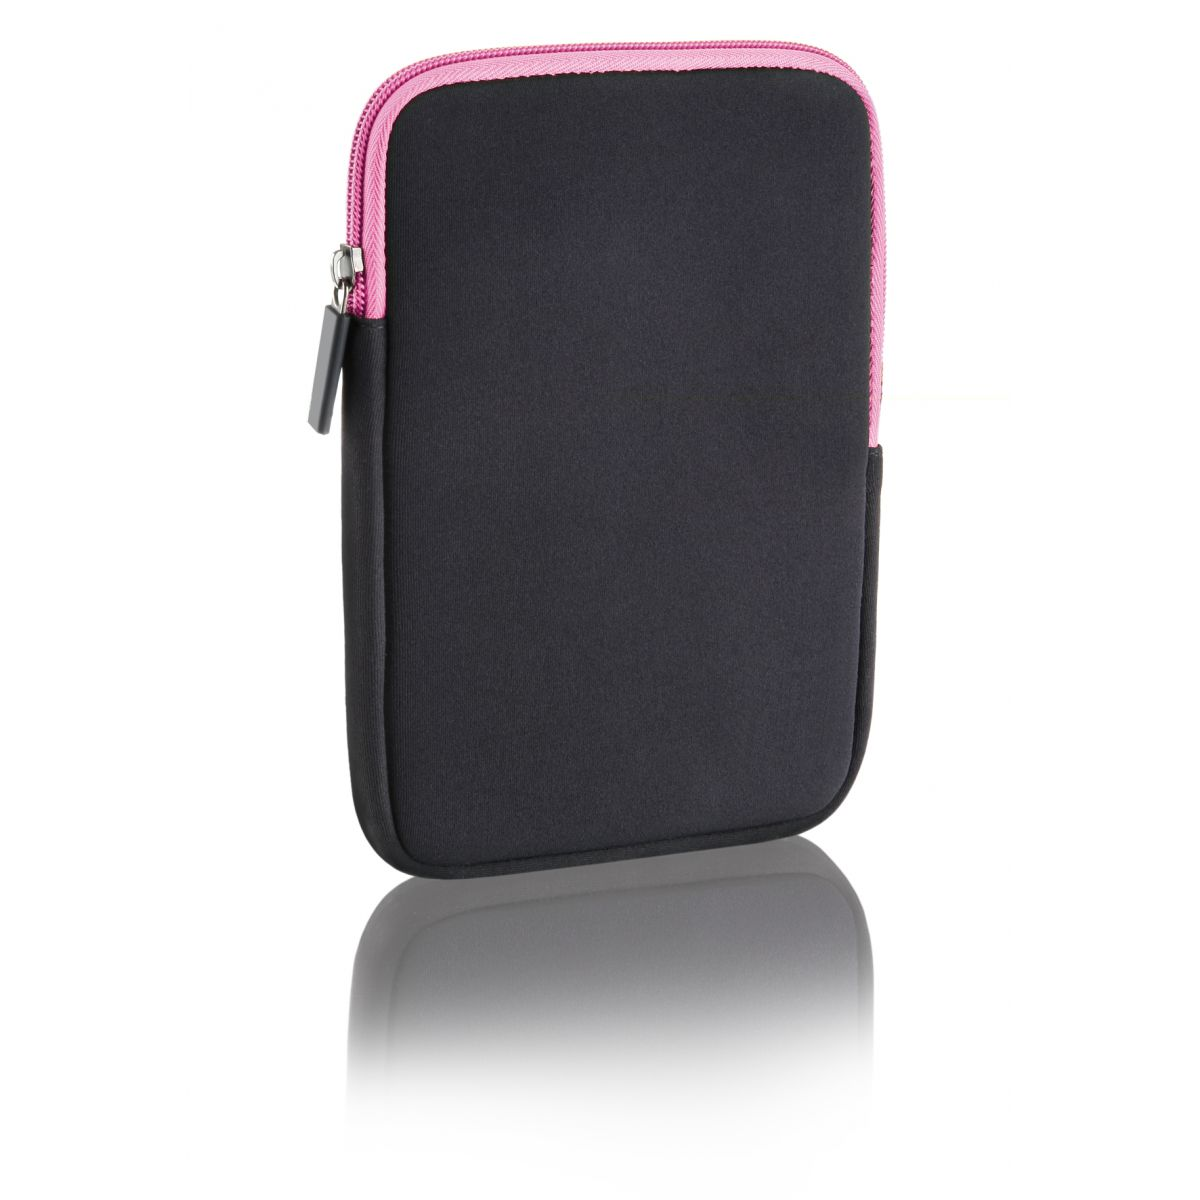 Case de Neoprene 10 Colors Preto/Rosa BO140 - Multilaser